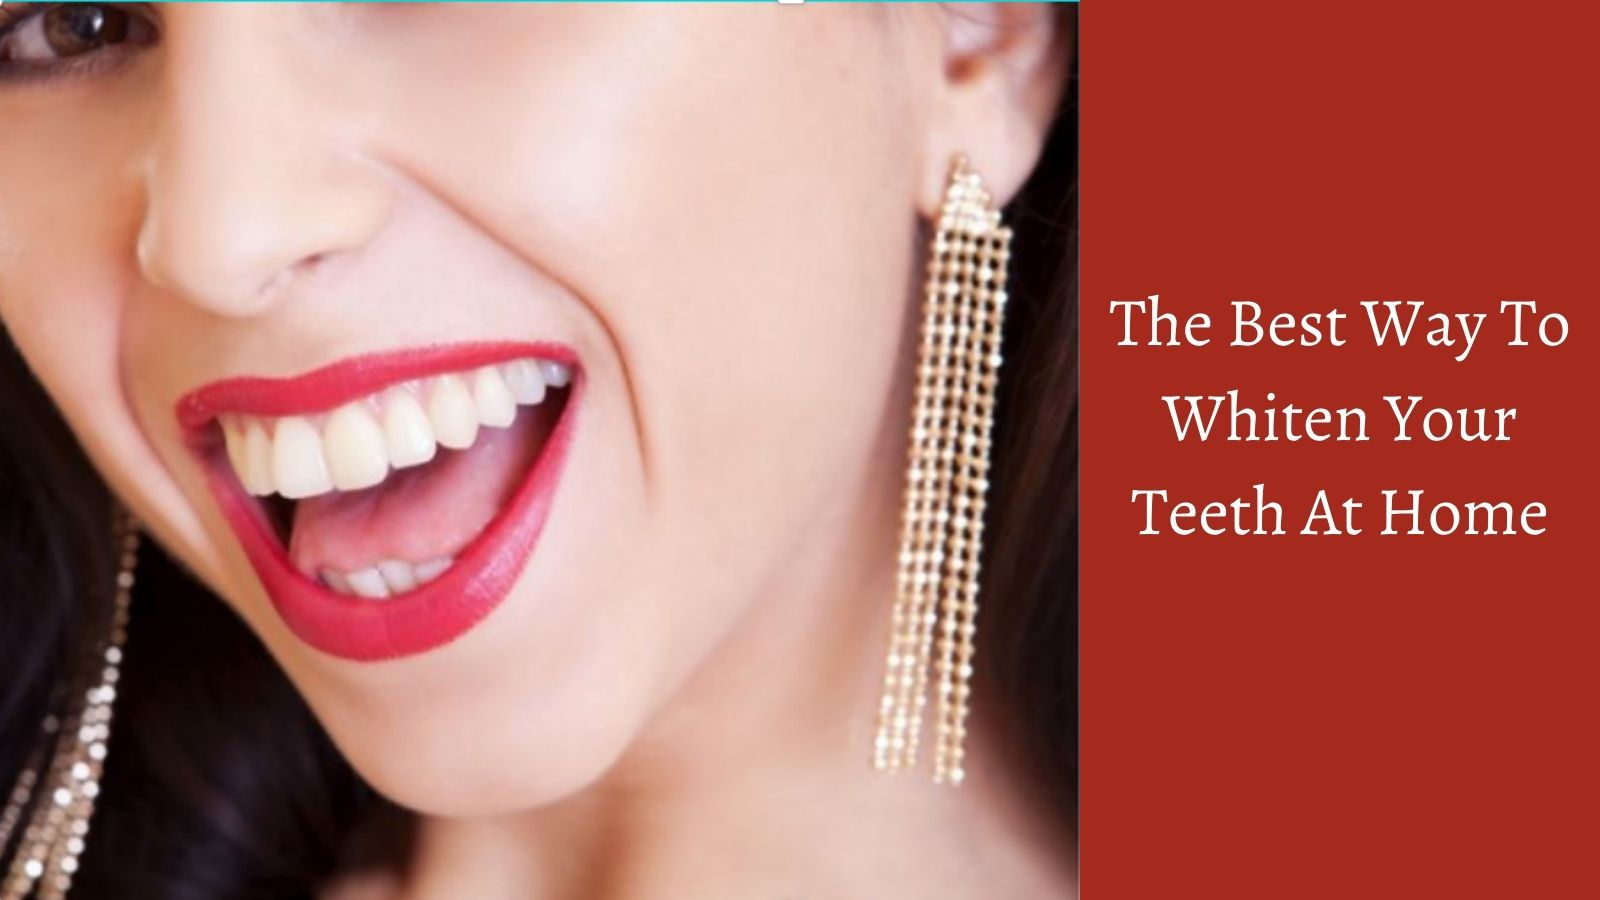 The Best Way To Whiten Your Teeth At Home - Beautiful Smile